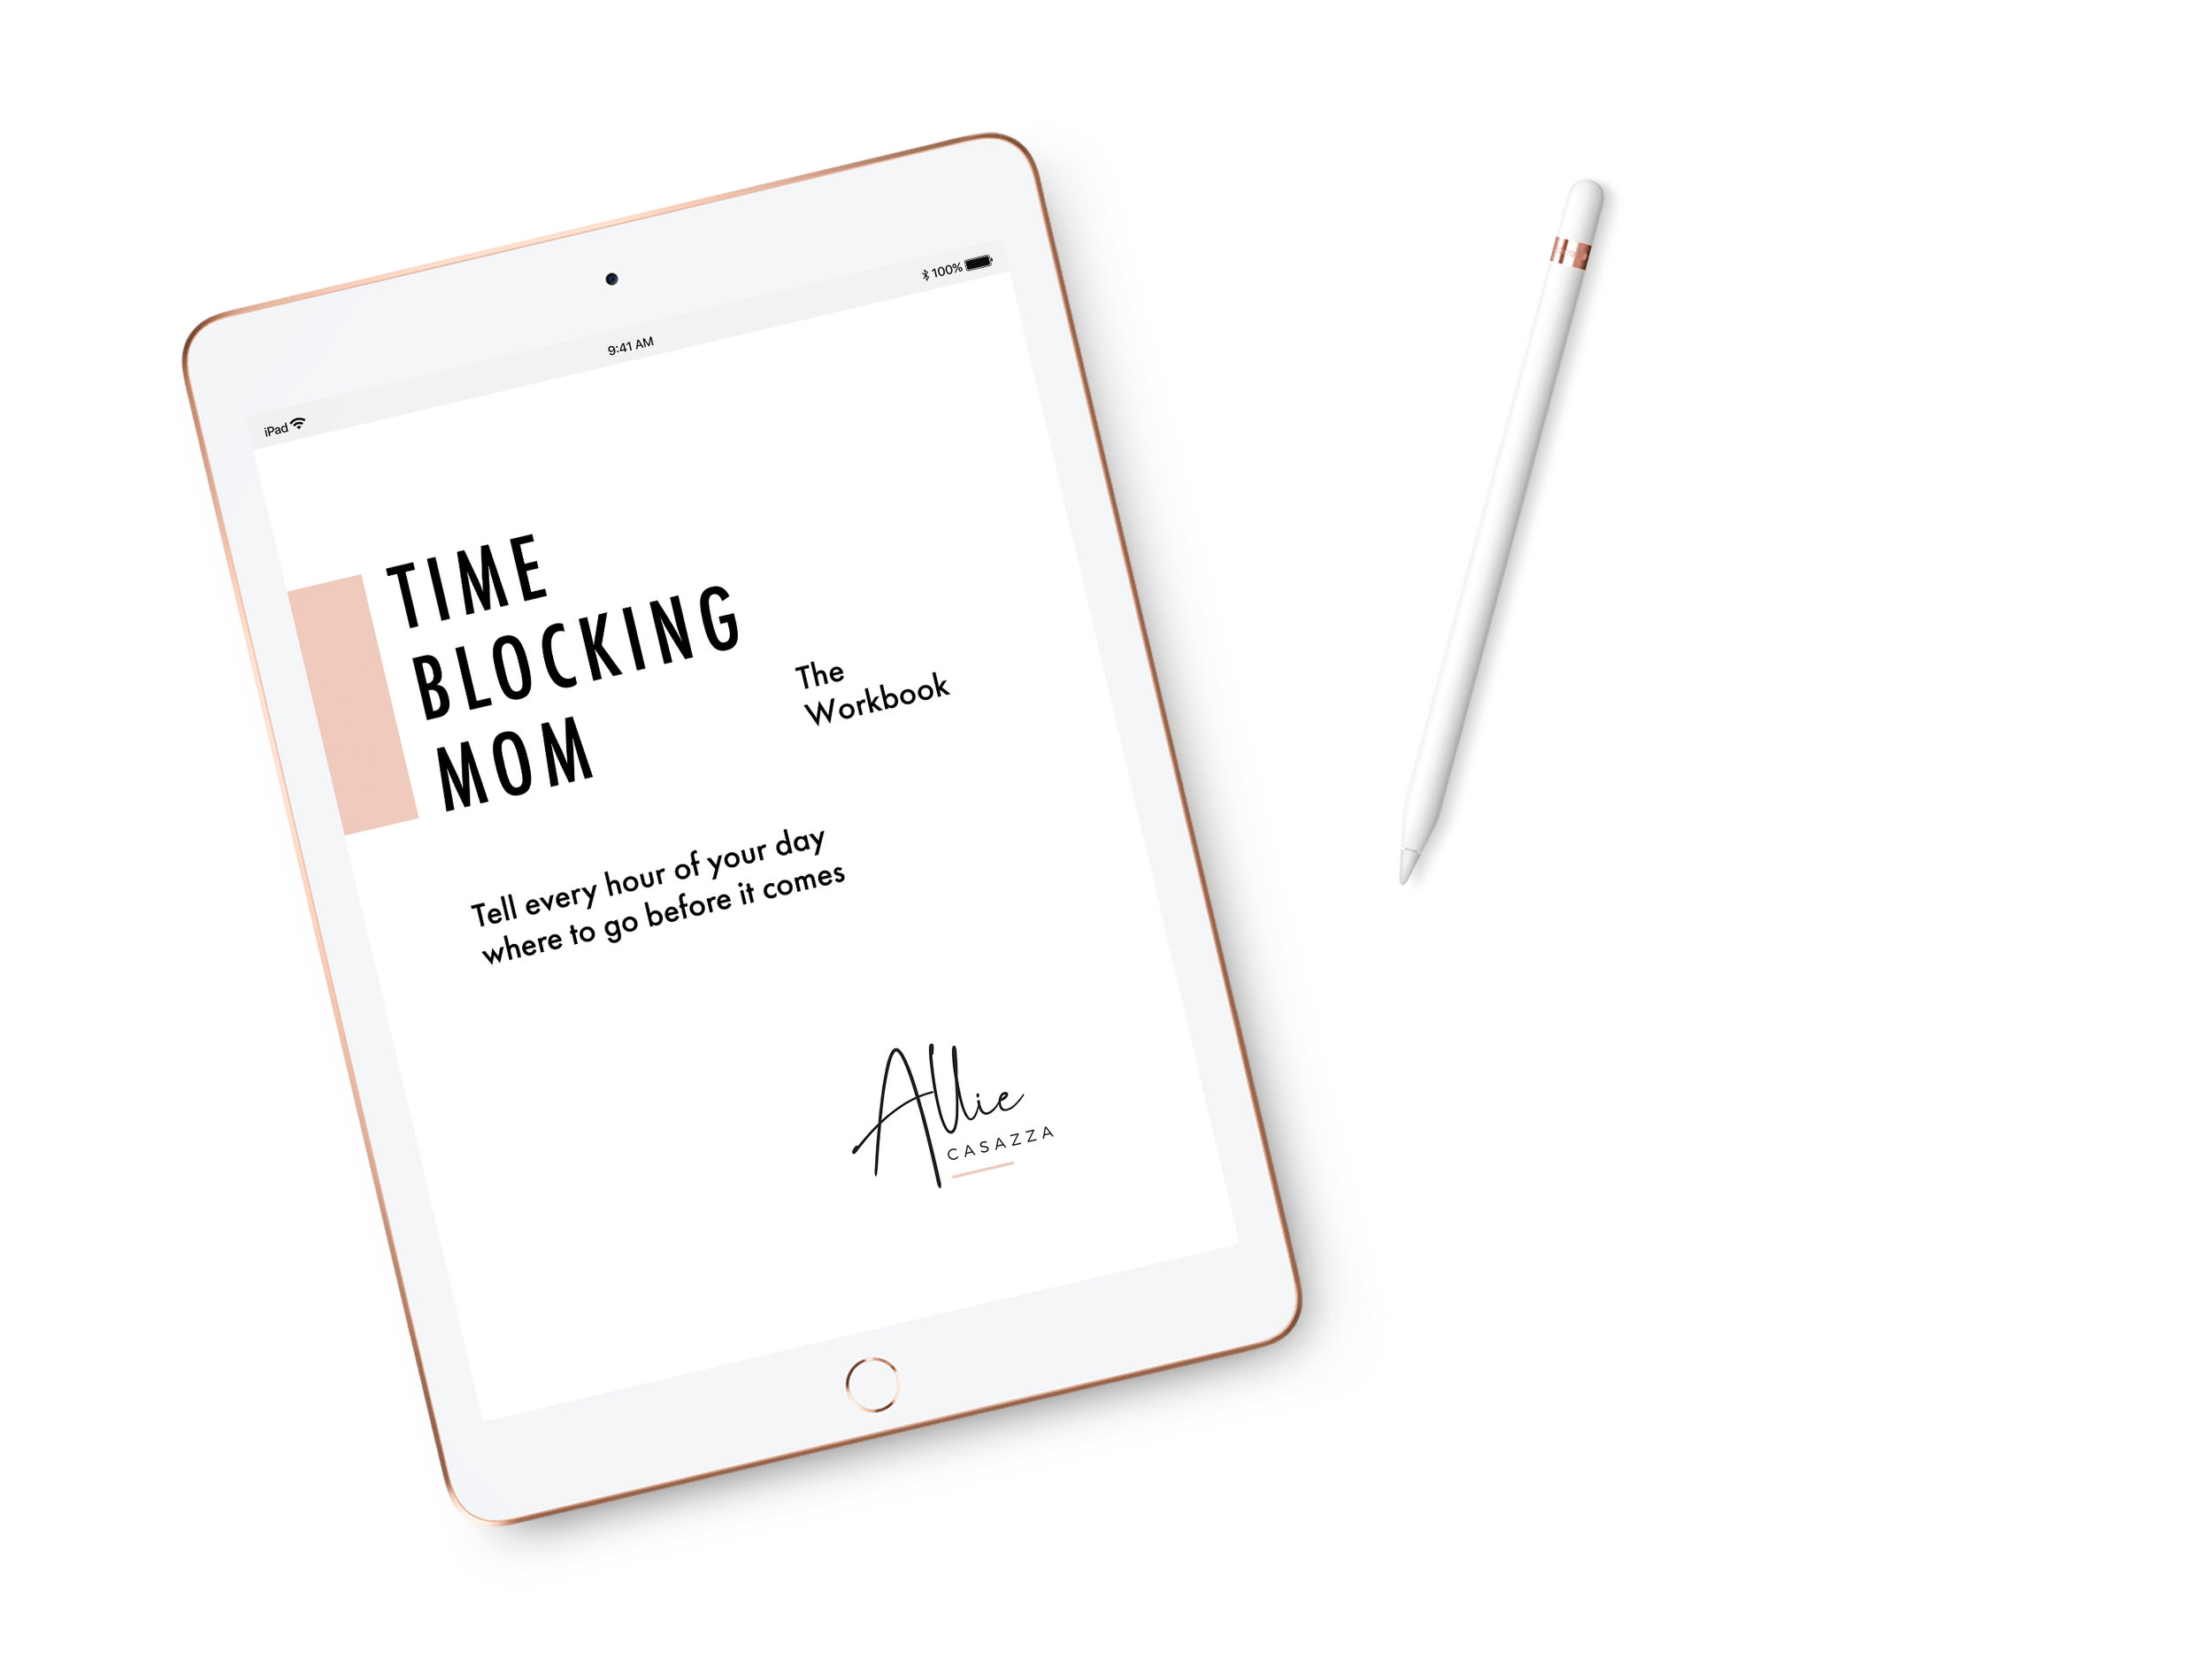 TimeBlockingMom-Cover-PromoImage-ipad.jpg